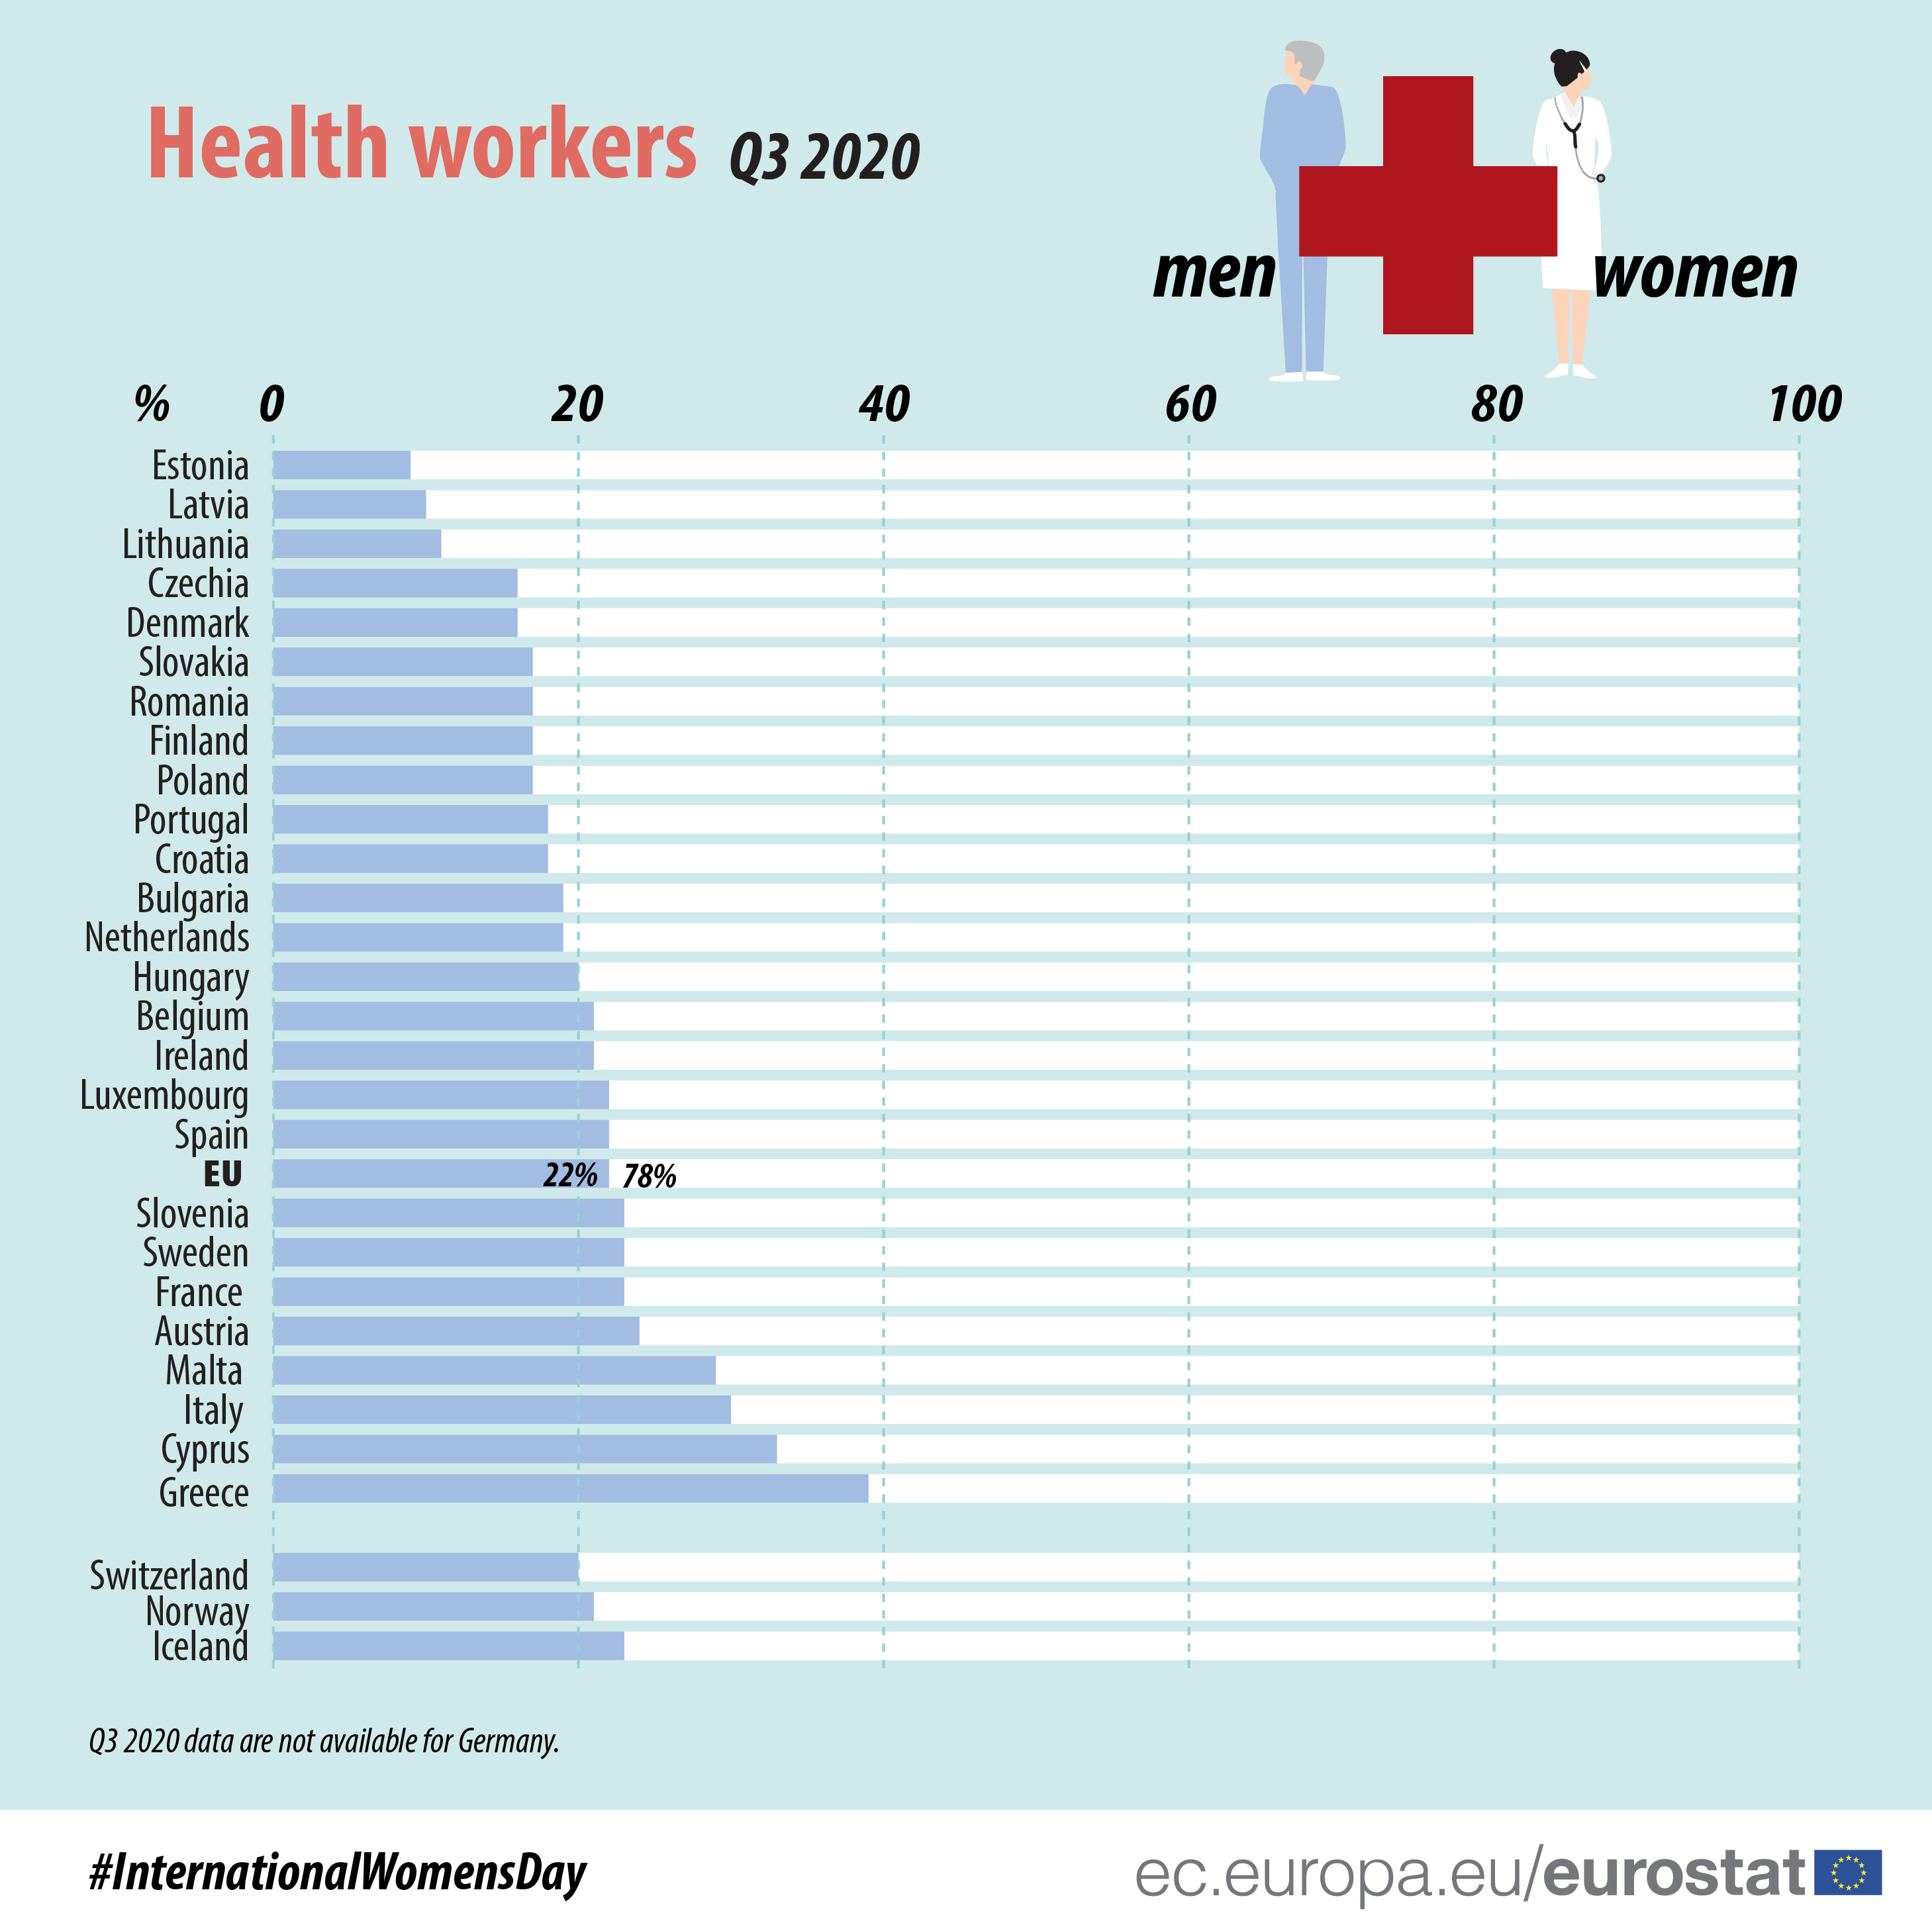 Health workers by sex, Q3 2020